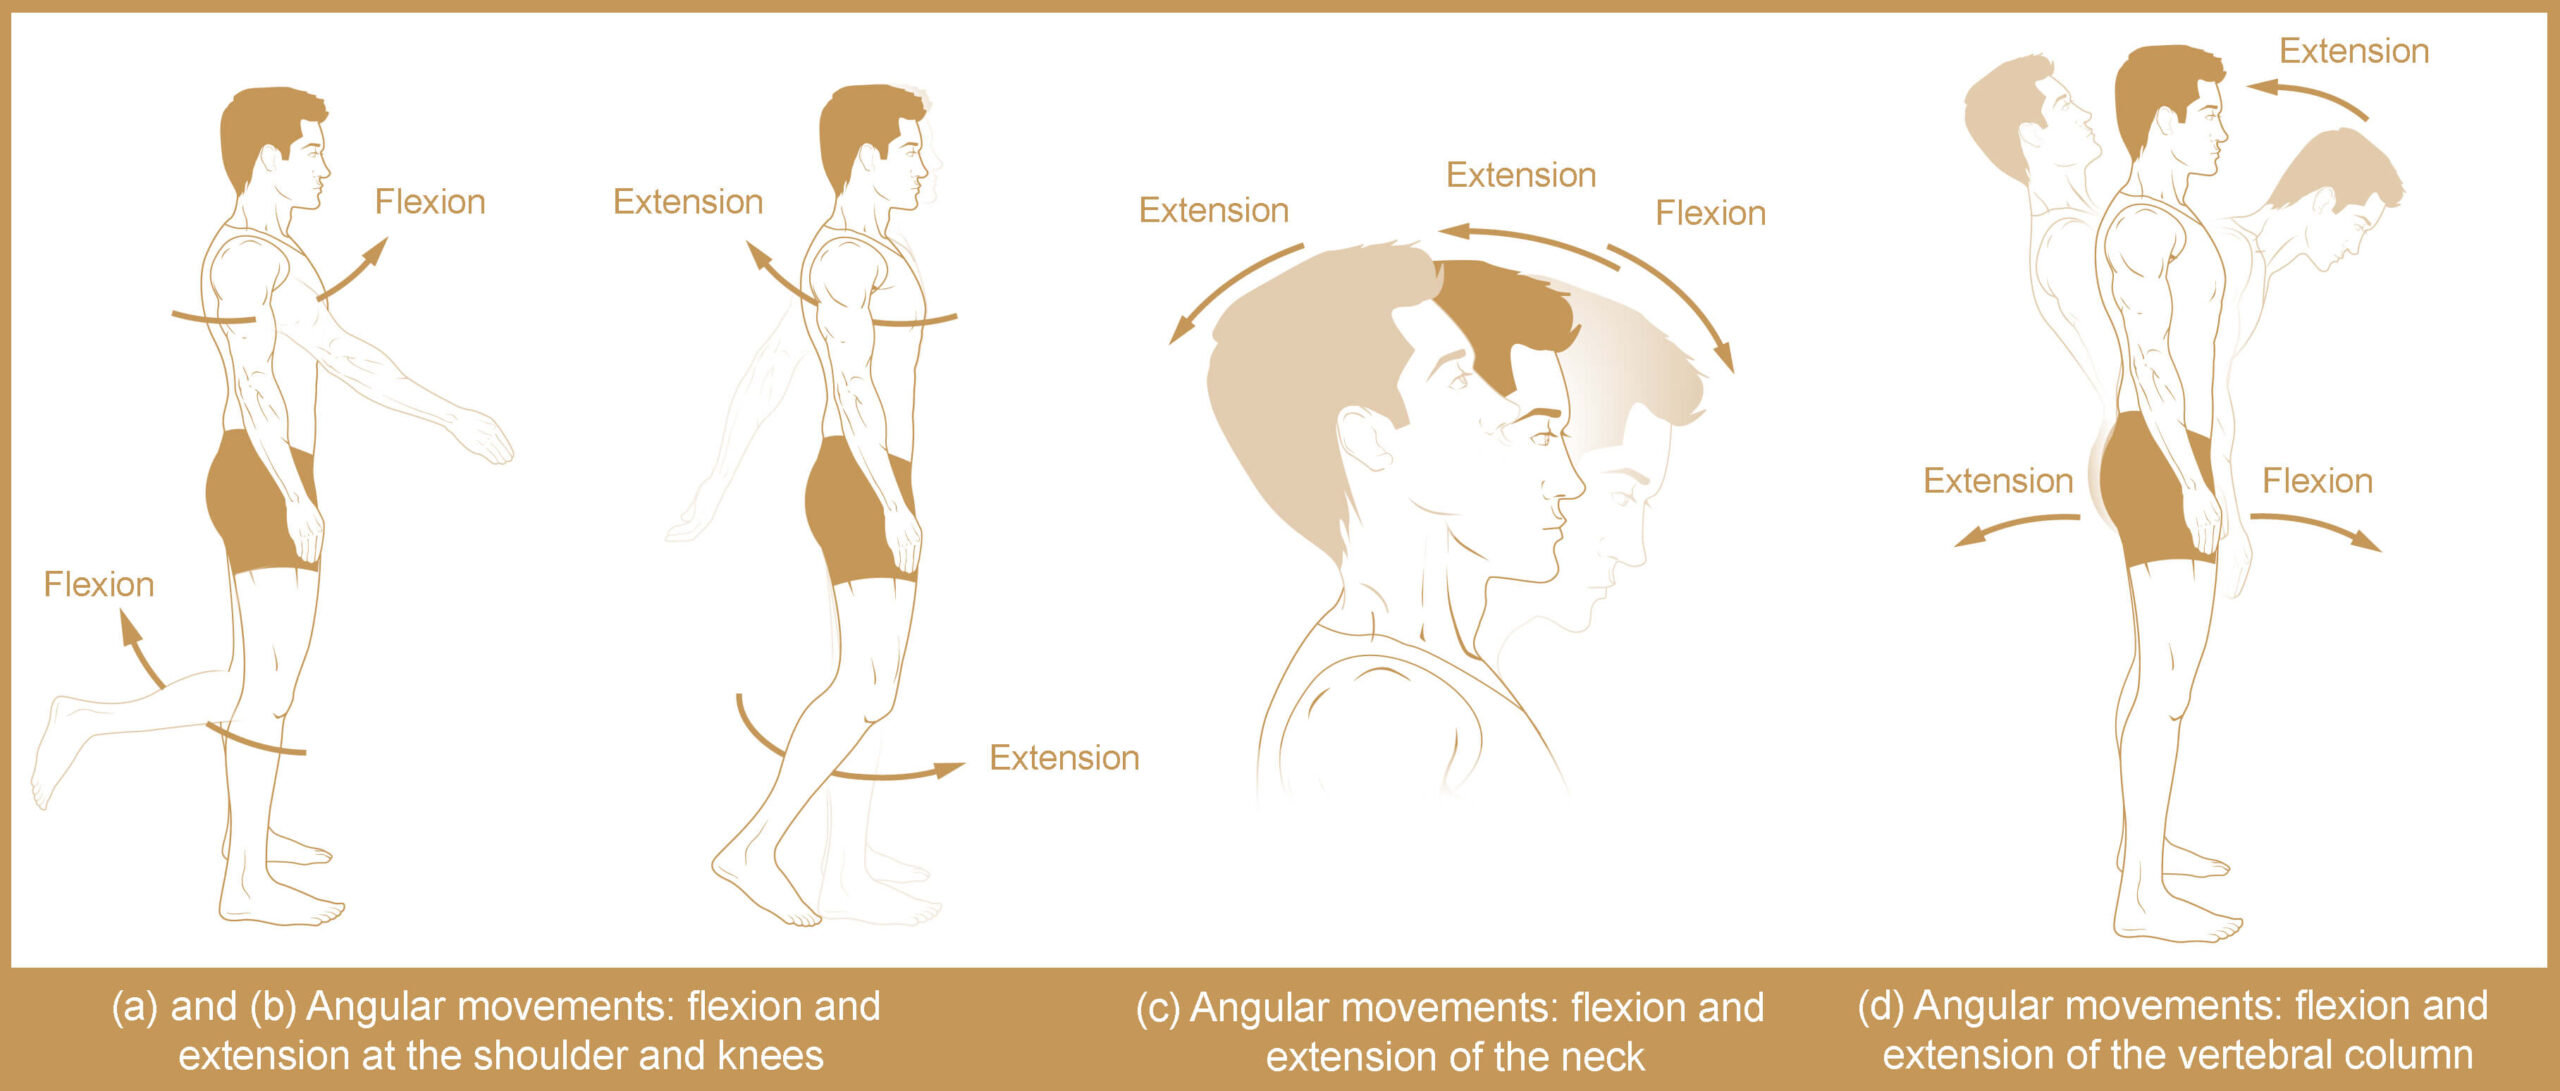 Types of Body Movement - Flexion & Extension